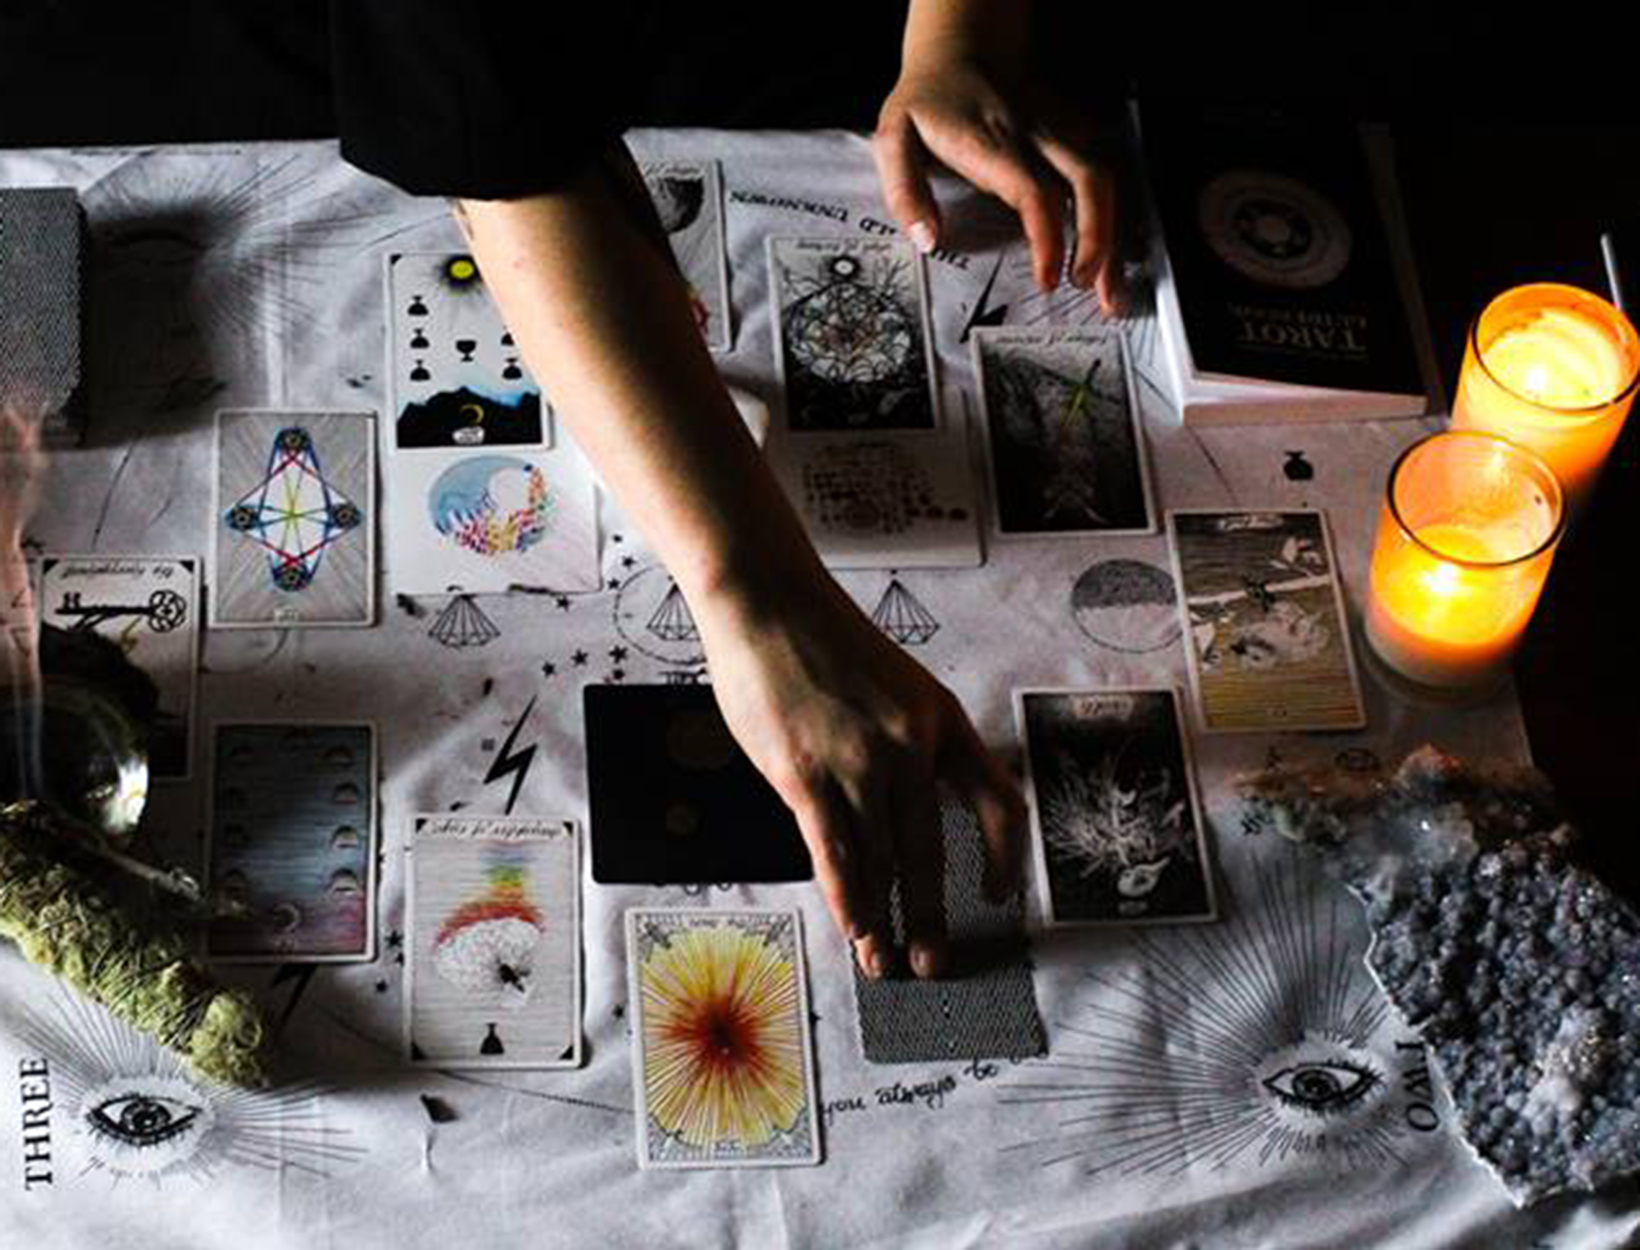 How to Use Tarot Cards to Guide Daily Decision-Making